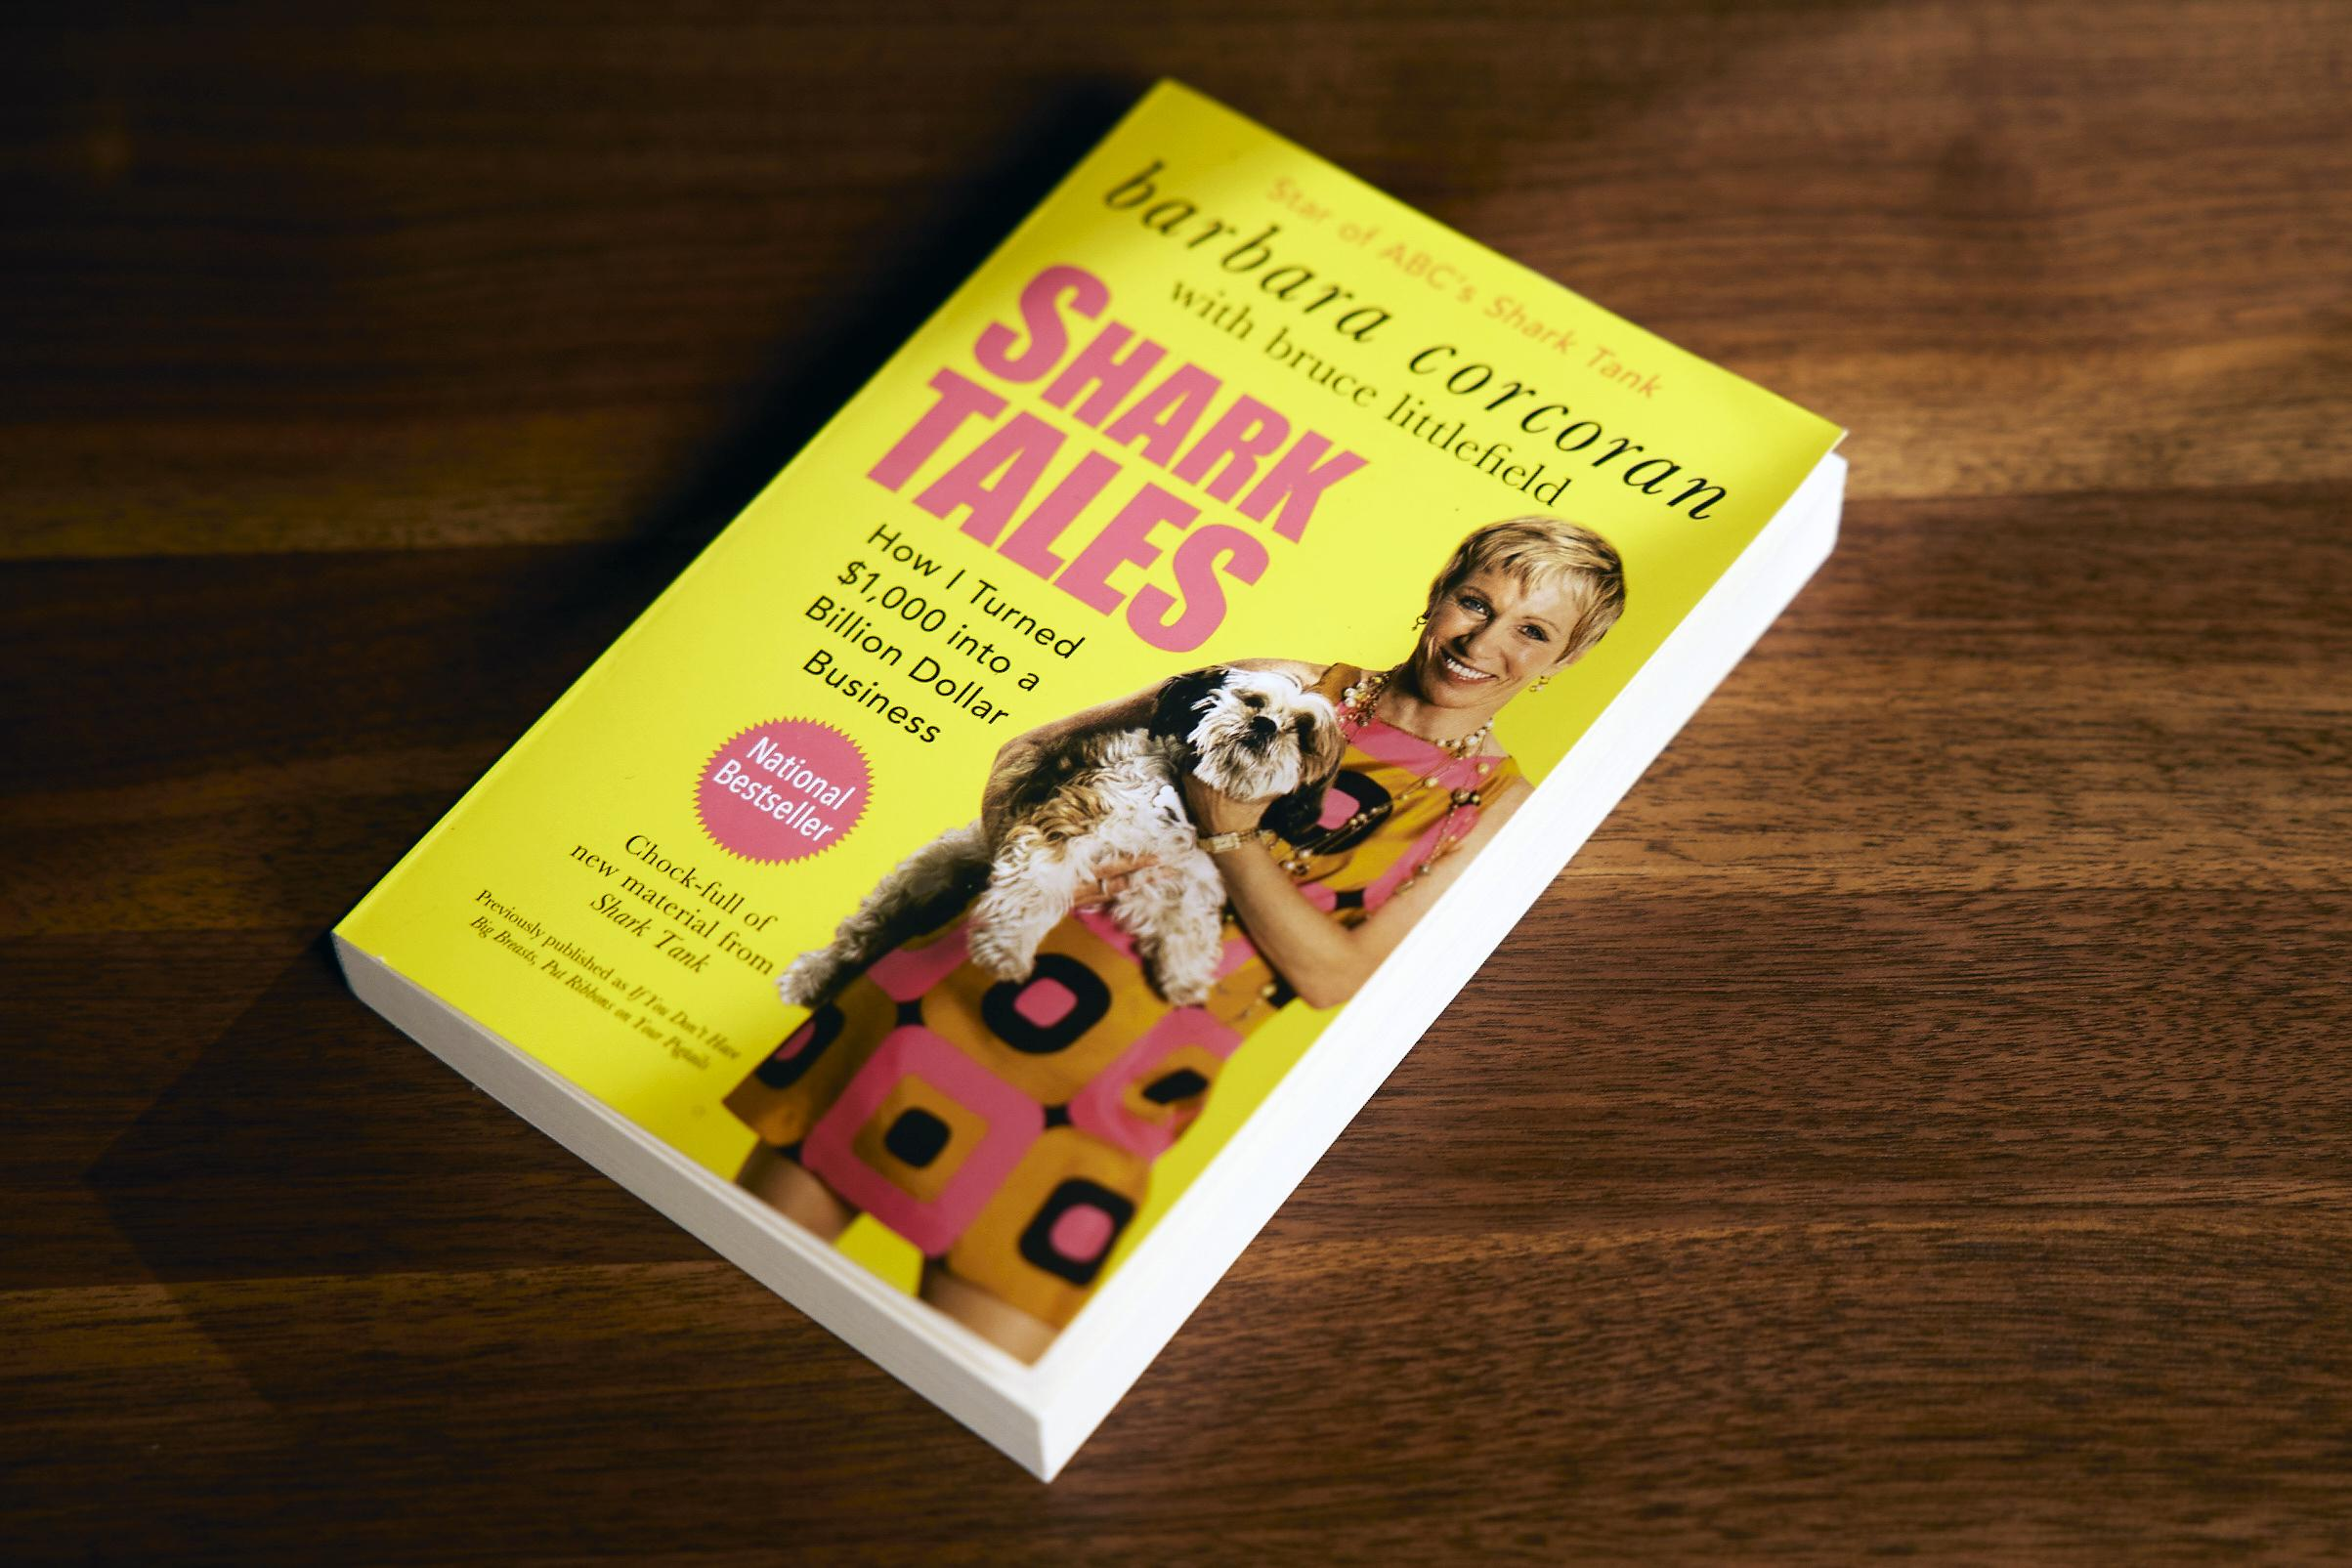 Entrepreneurship is hard, but you don't have to go in it alone. Barbara Corcoran + BookClub can help.